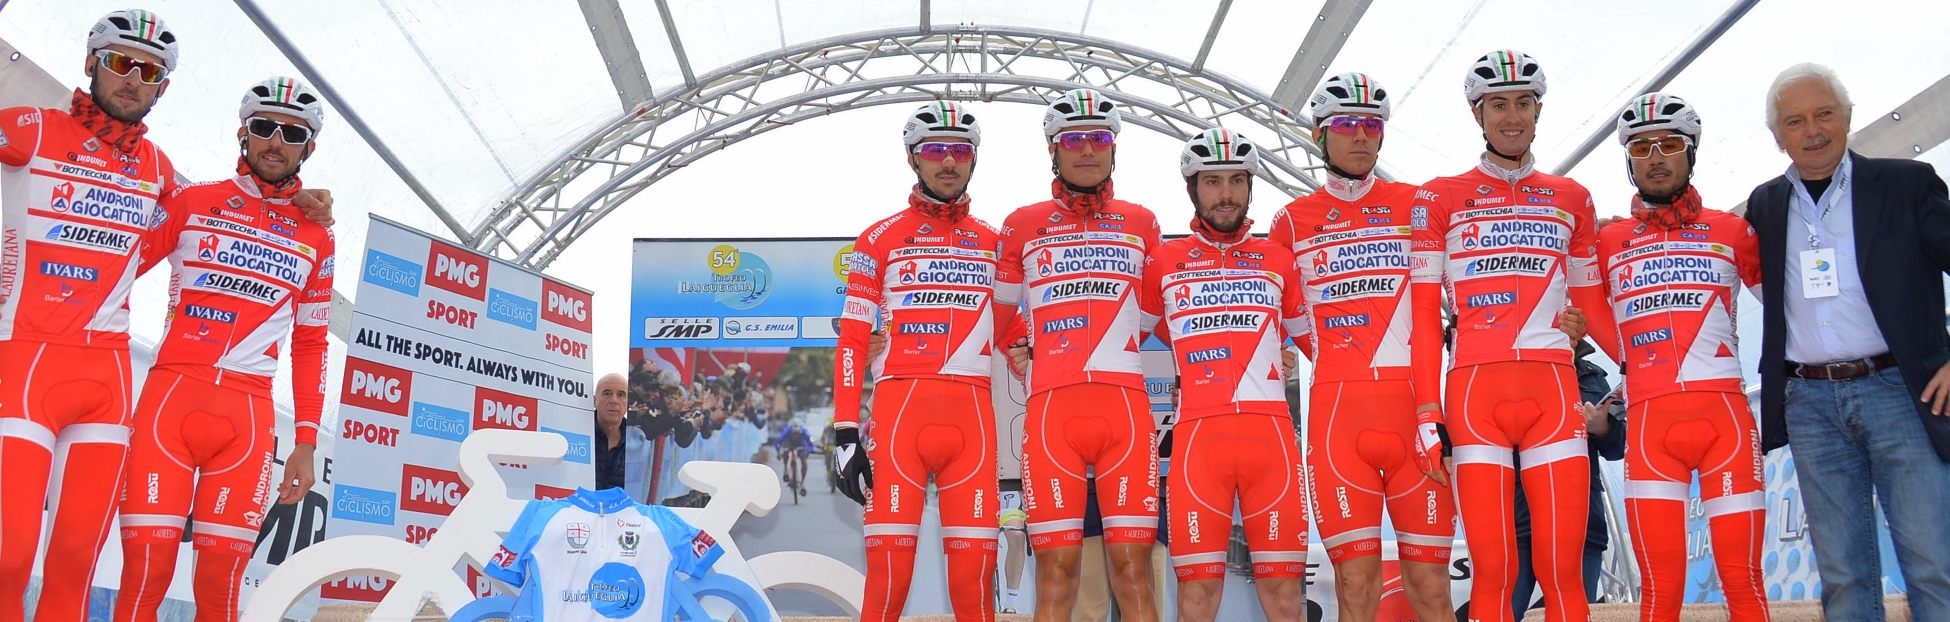 Bottecchia Team 2